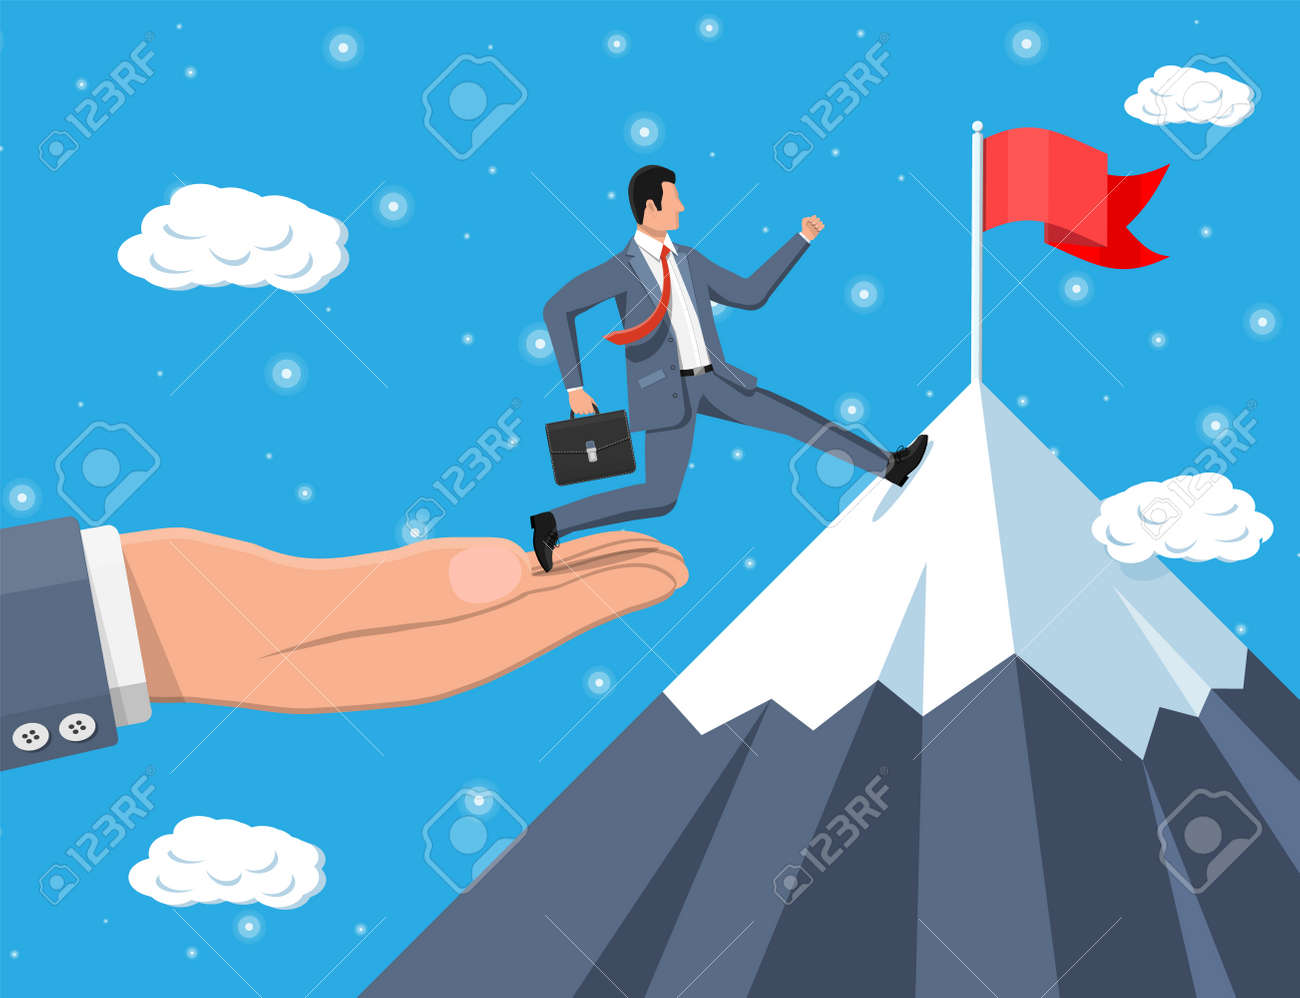 Businessman on chart ladder is fast running with waving necktie and briefcase. Goal setting. Smart goal. Business target concept. Achievement and success. Vector illustration in flat style - 156734743